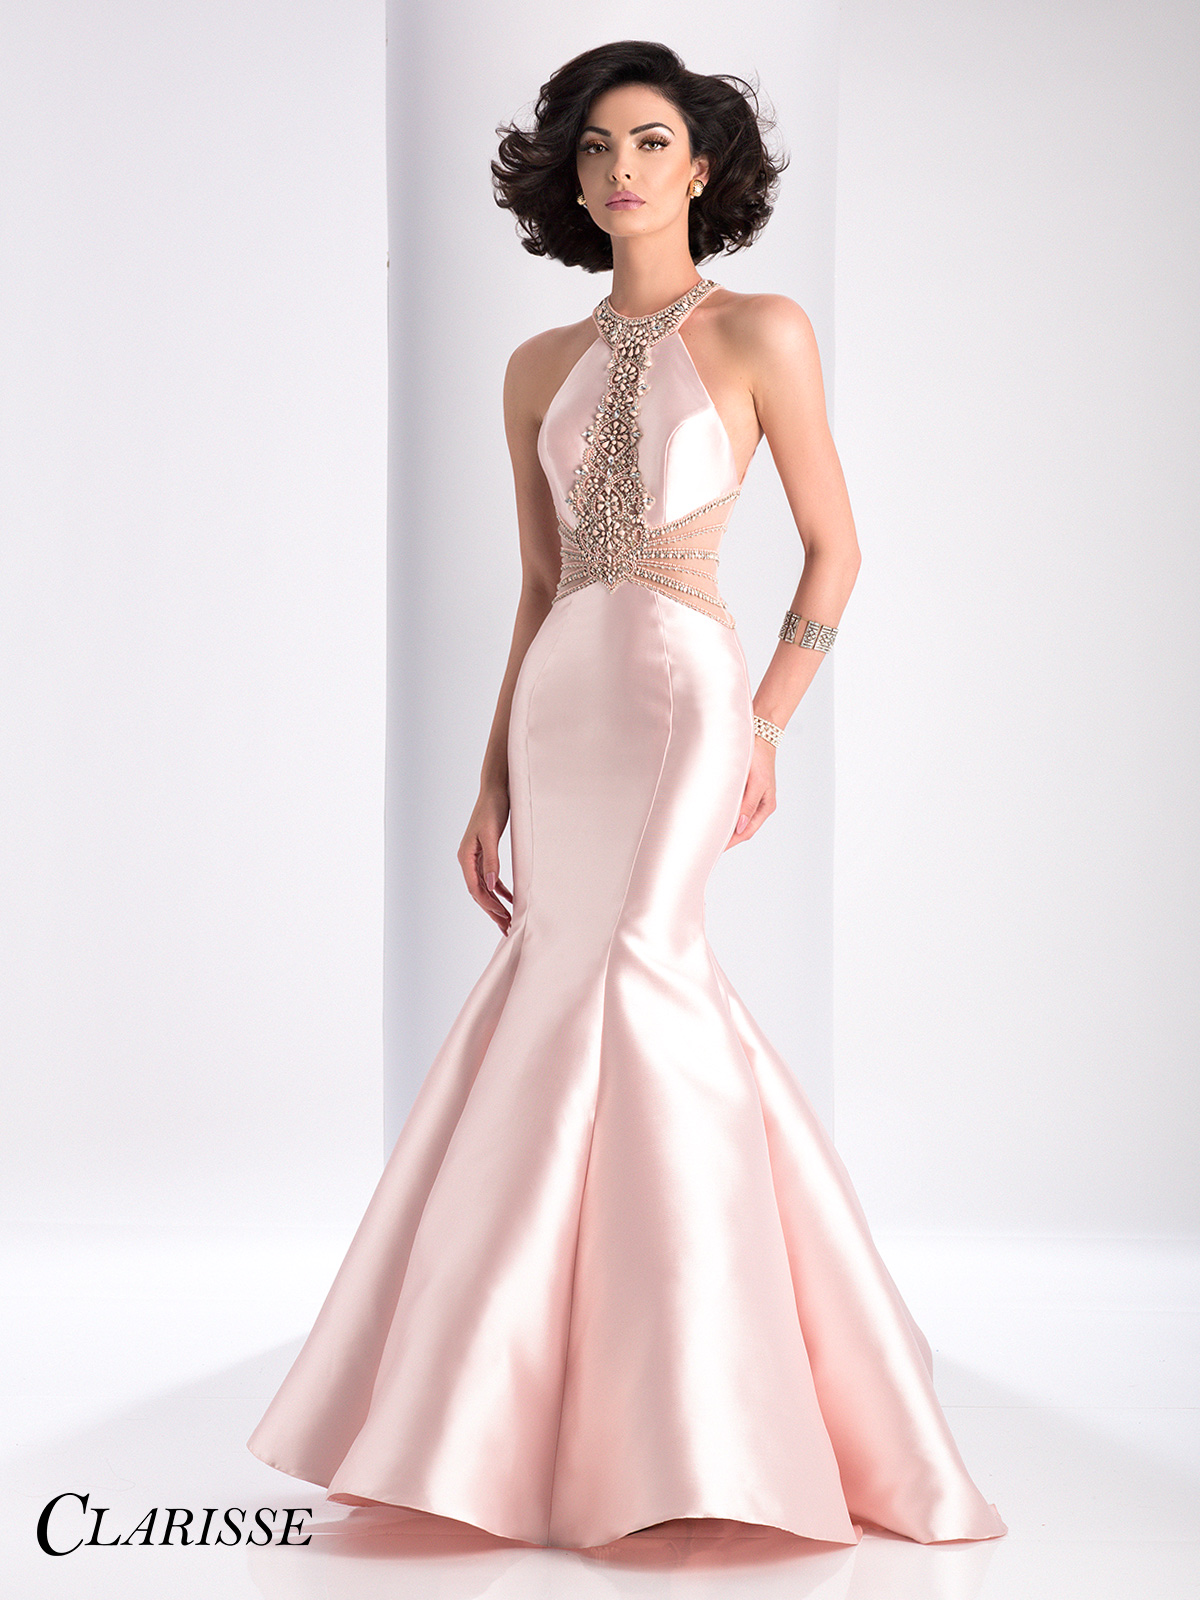 Clarisse Prom Dress 3139 | Promgirl.net